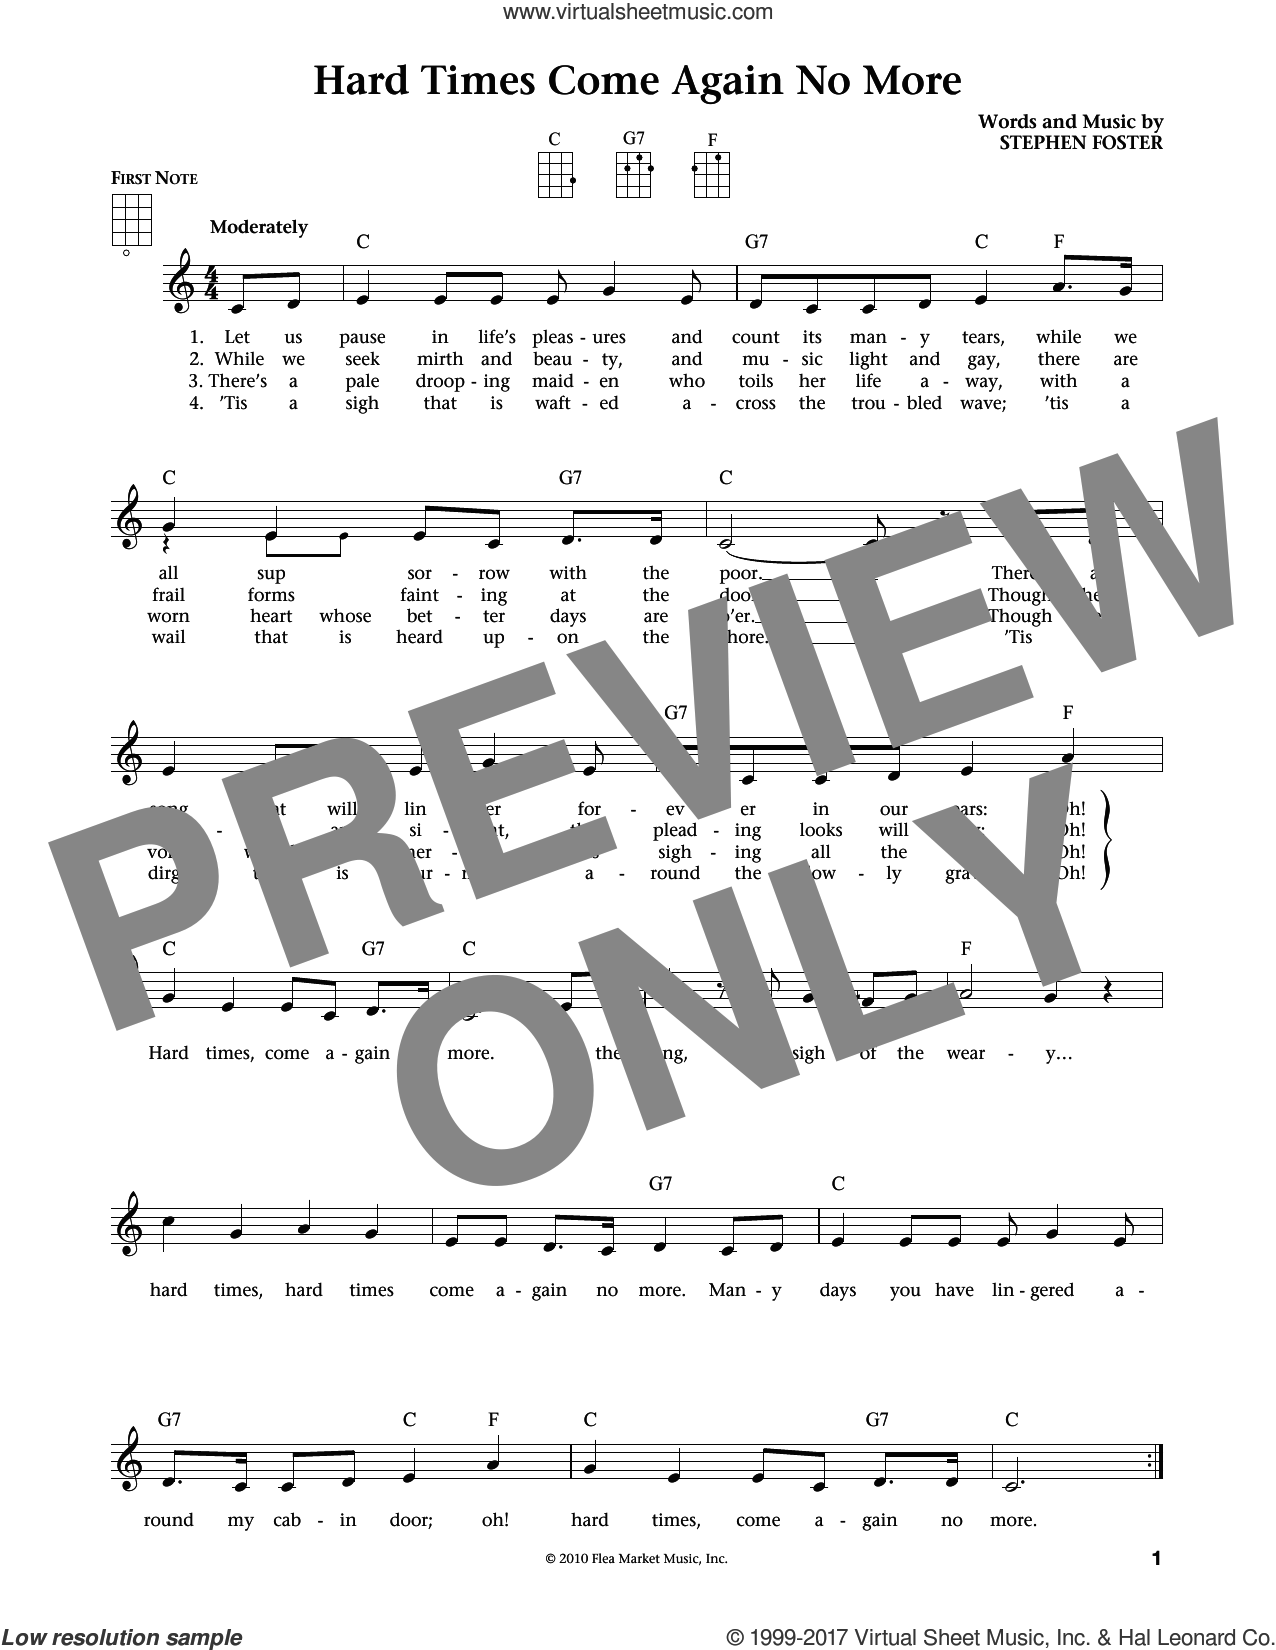 Hard Times Come Again No More sheet music for ukulele by Stephen Foster. Score Image Preview.